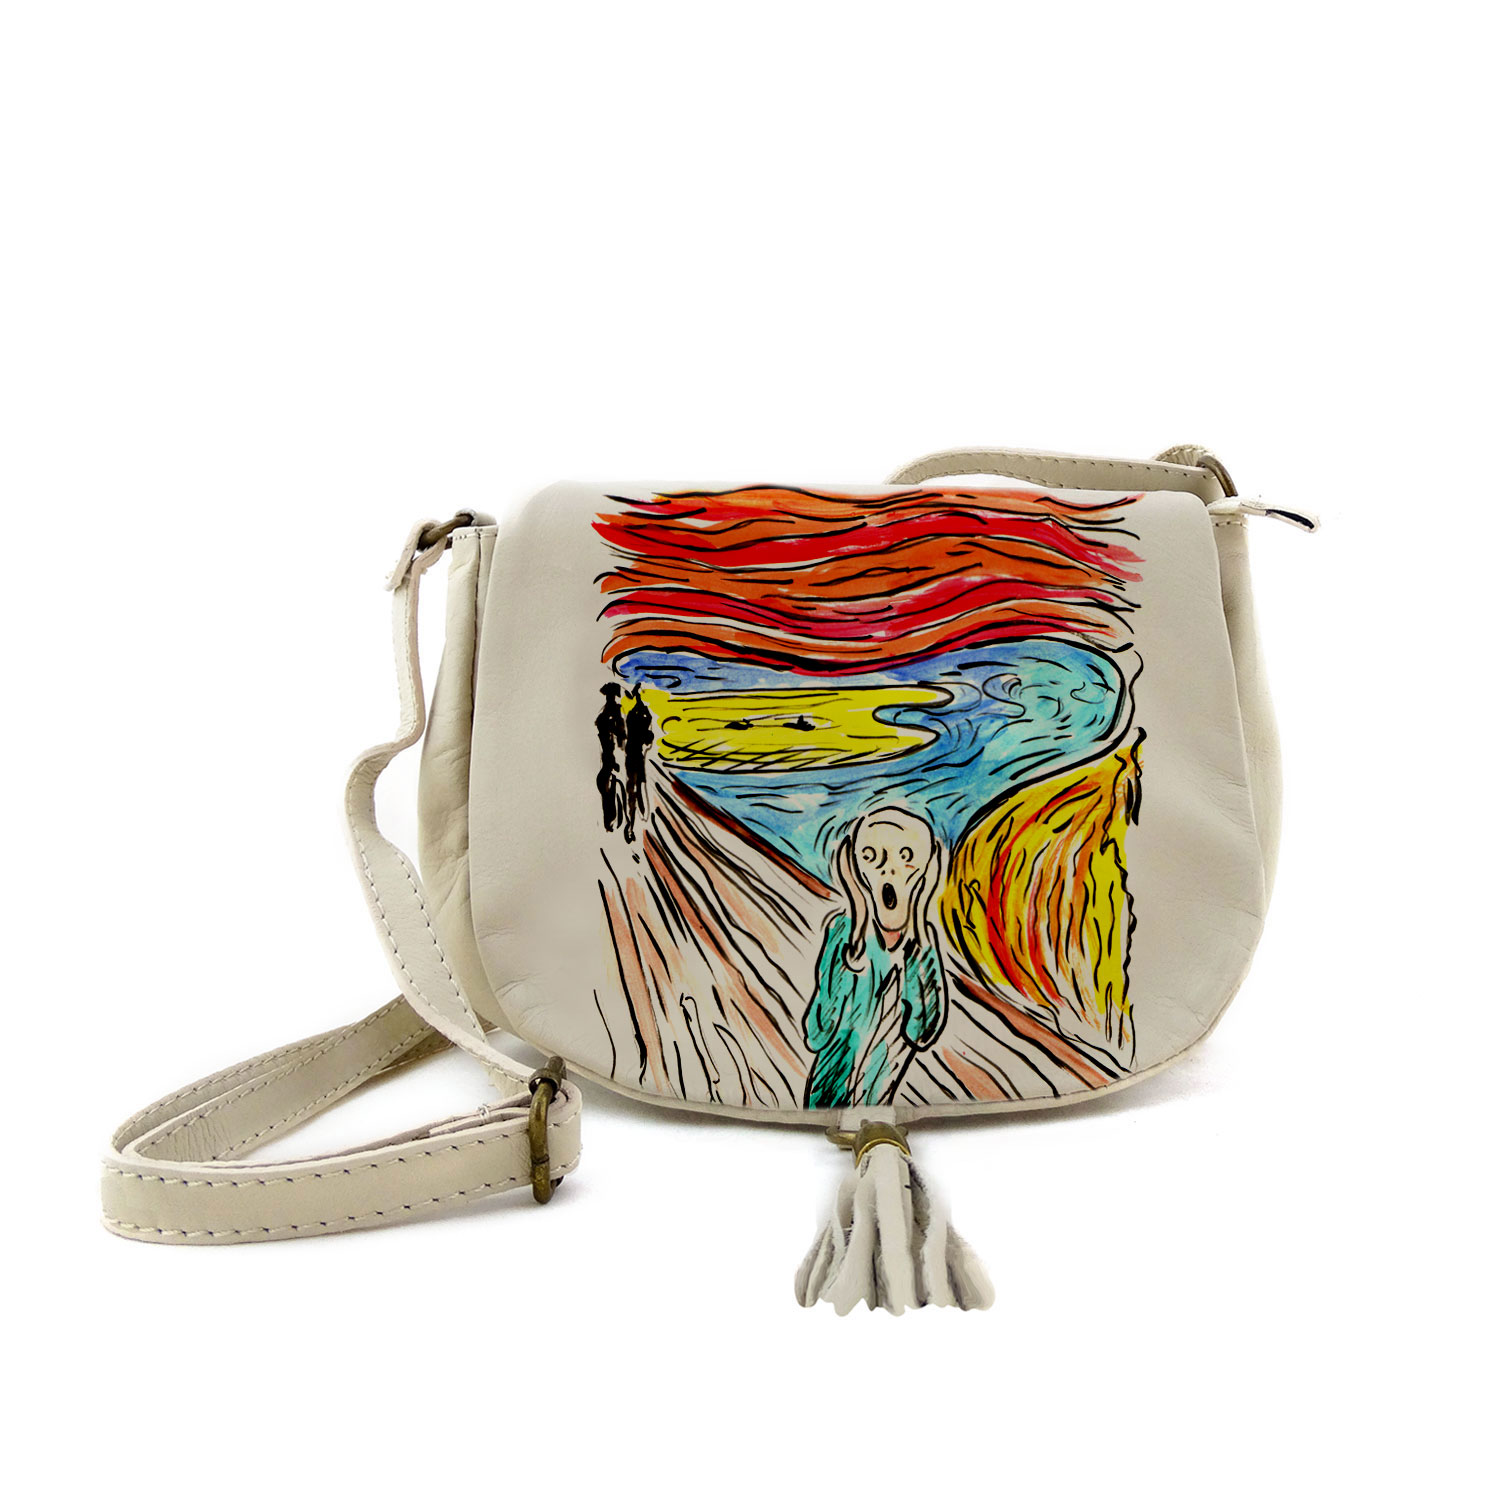 Borsa dipinta a mano – L'urlo di Munch cartoon color